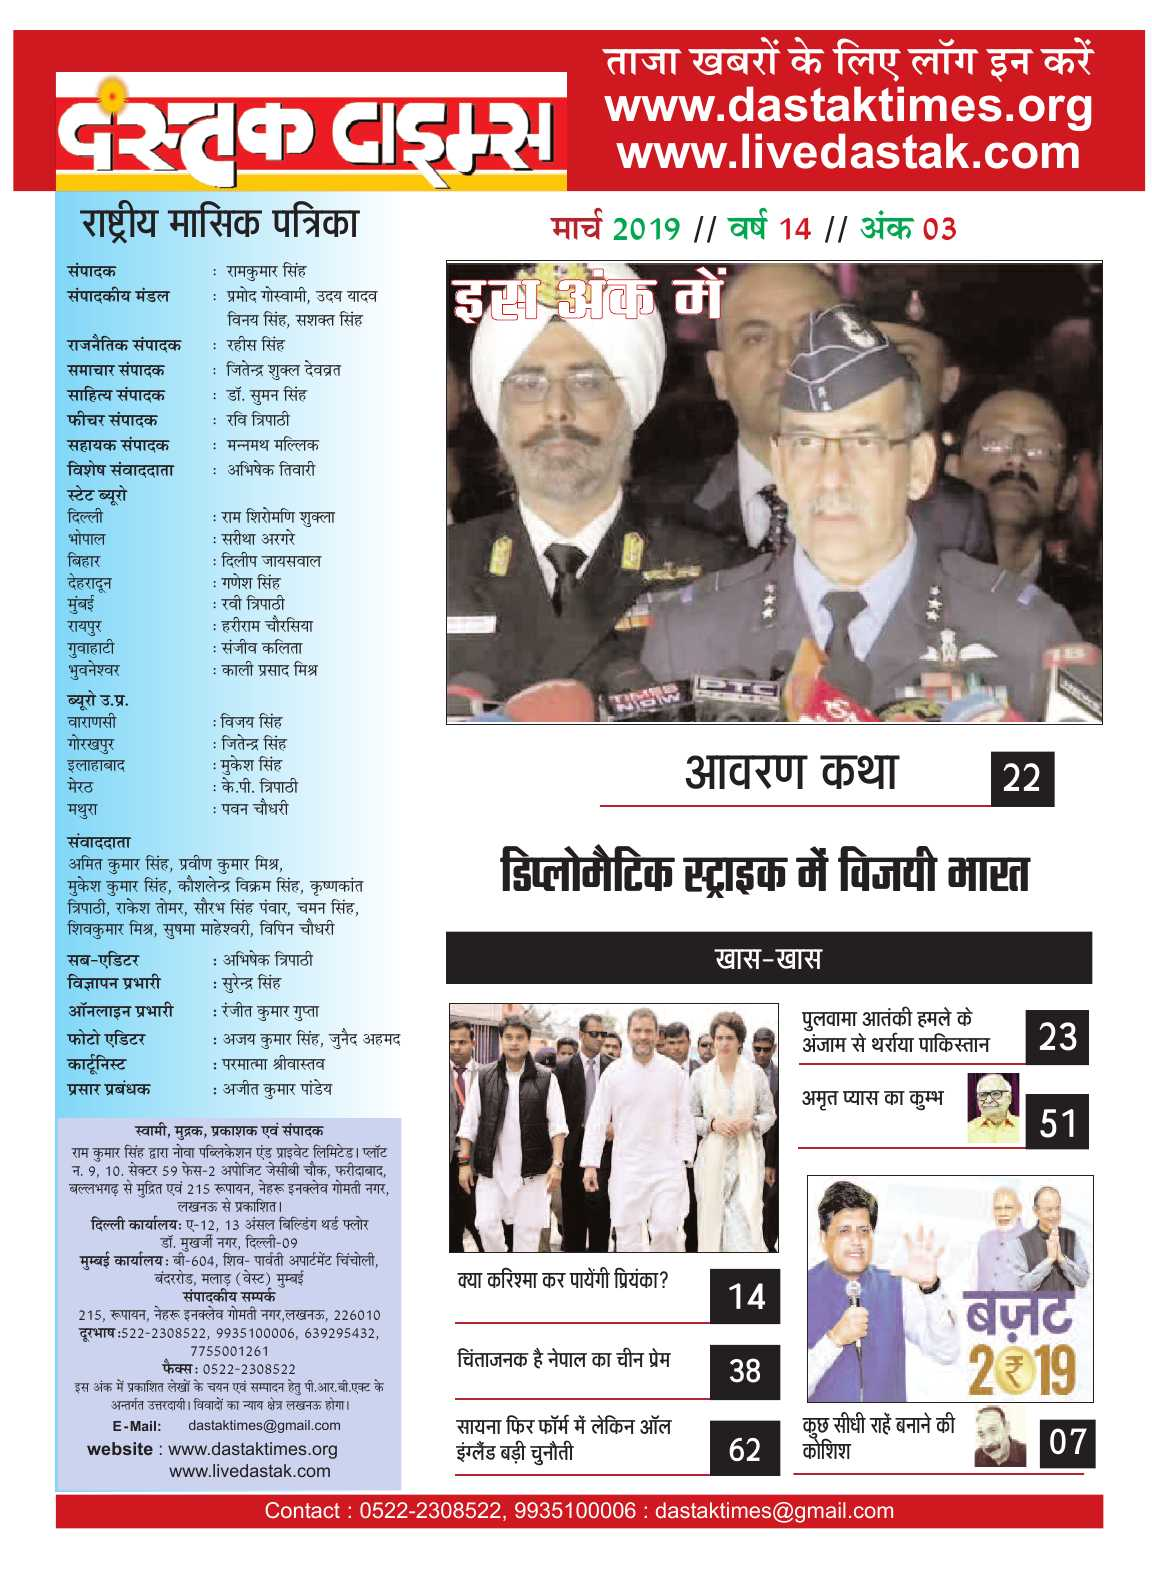 March 2019_Dastak Times new file3